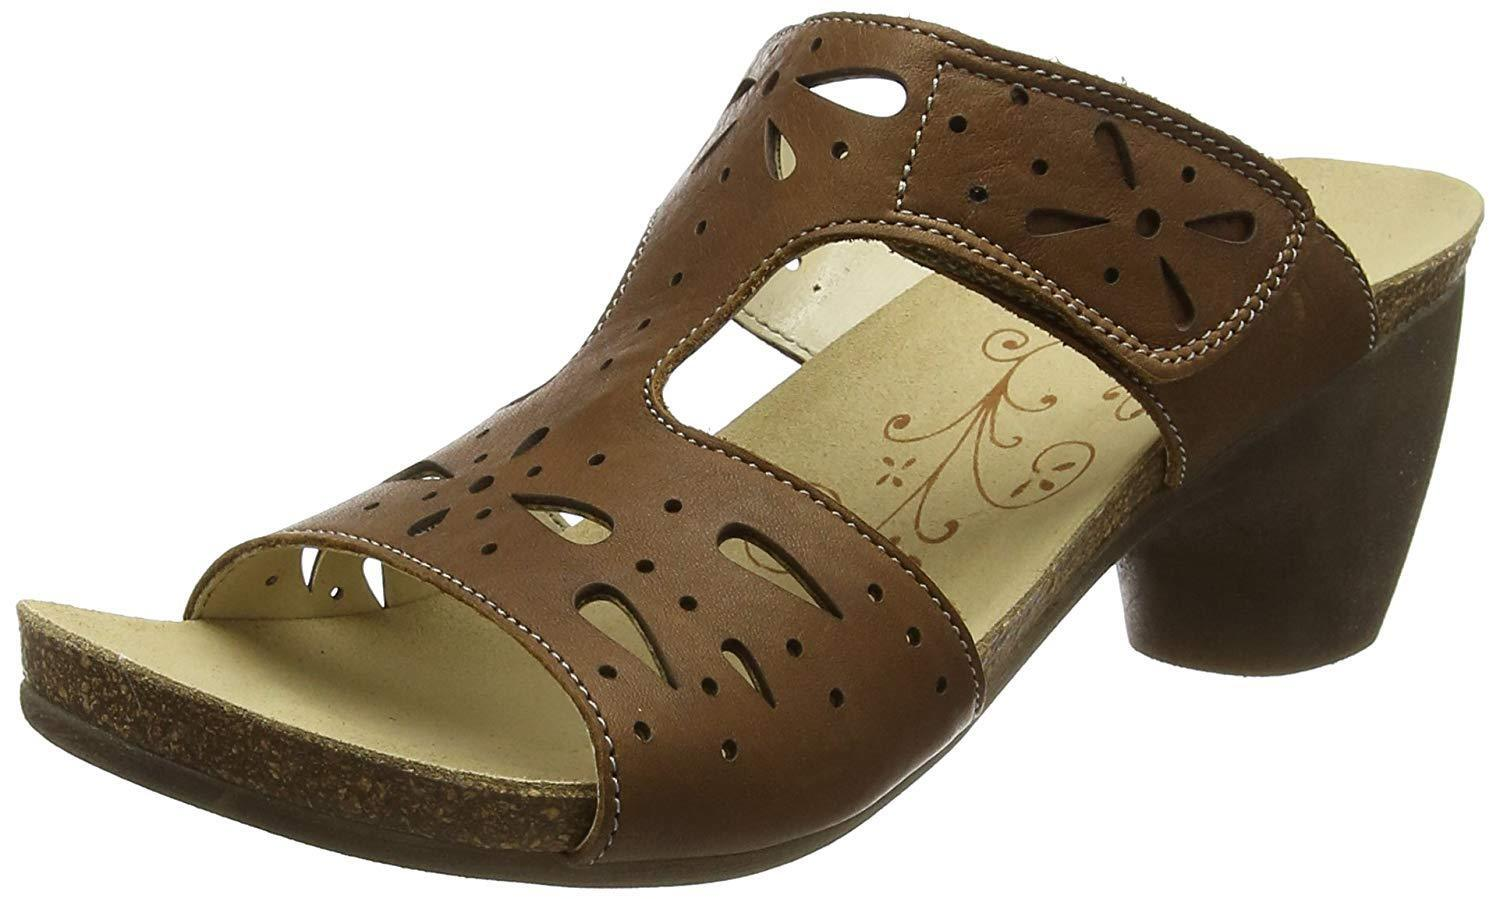 Van Dal Women's Vivo  Sandals 5 UK 38 EU Summer shoe New